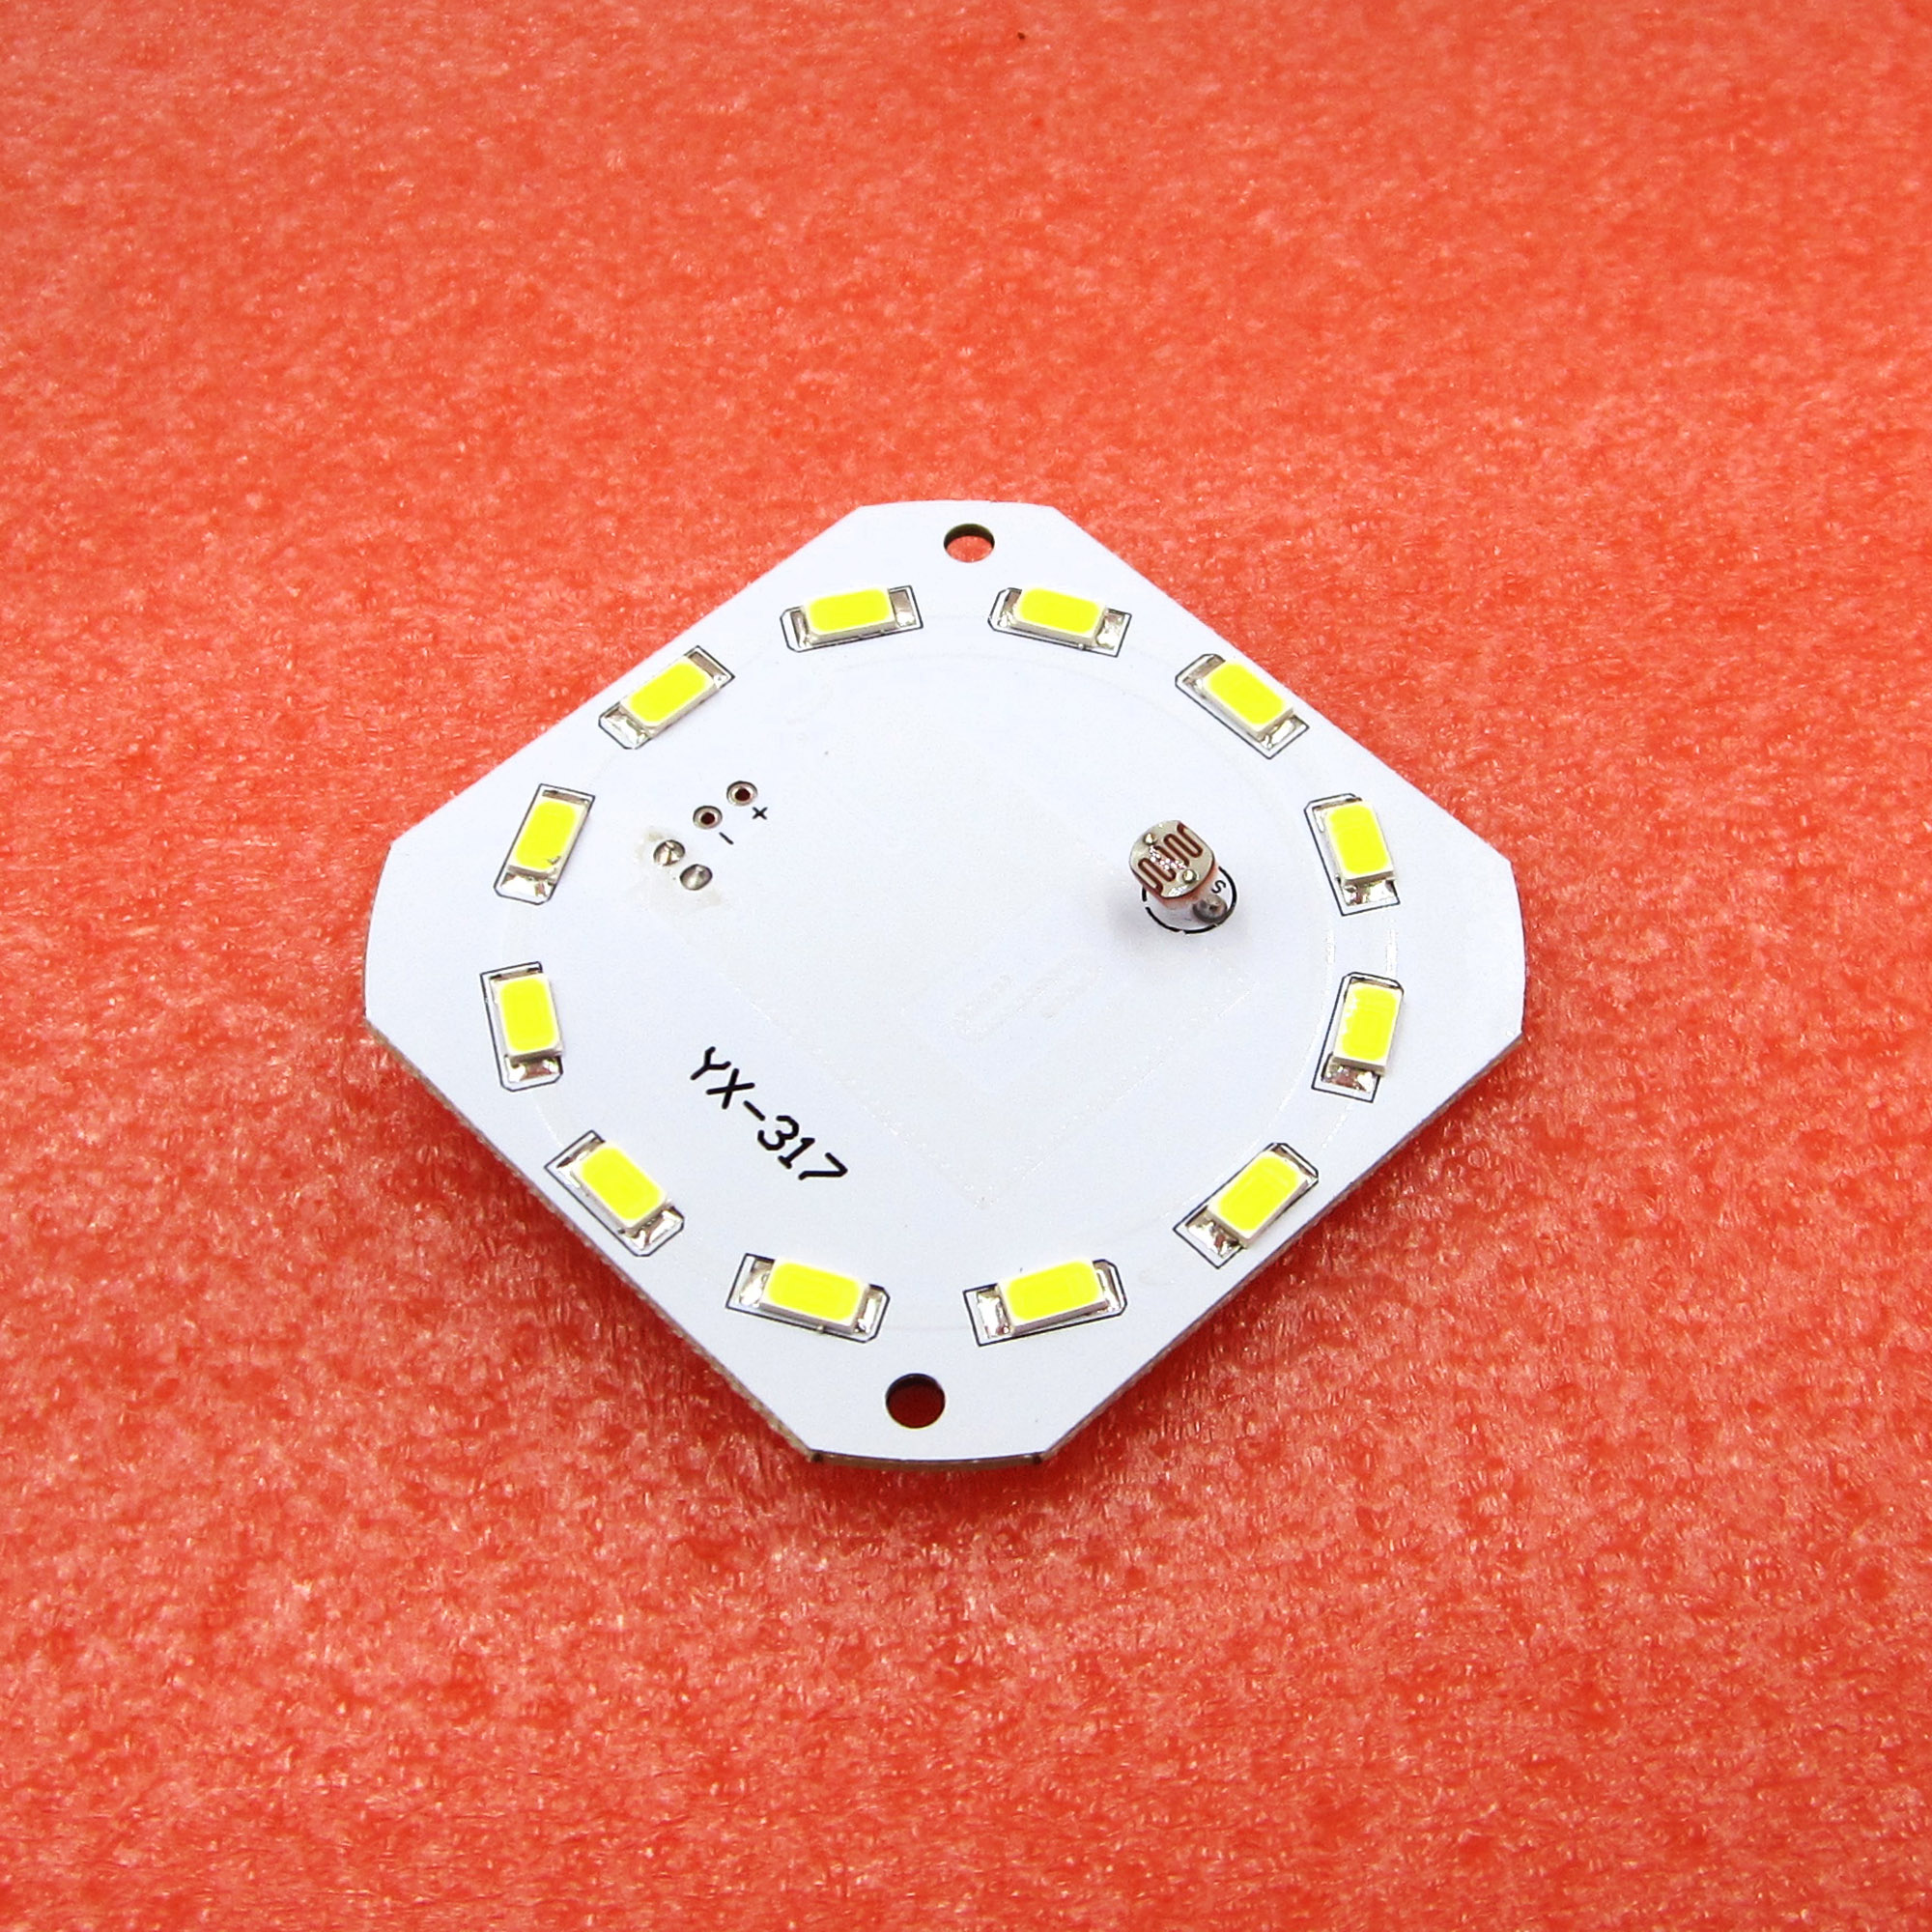 The new 7W 240mA human radar sensor LED board SMD intelligent lighting control U